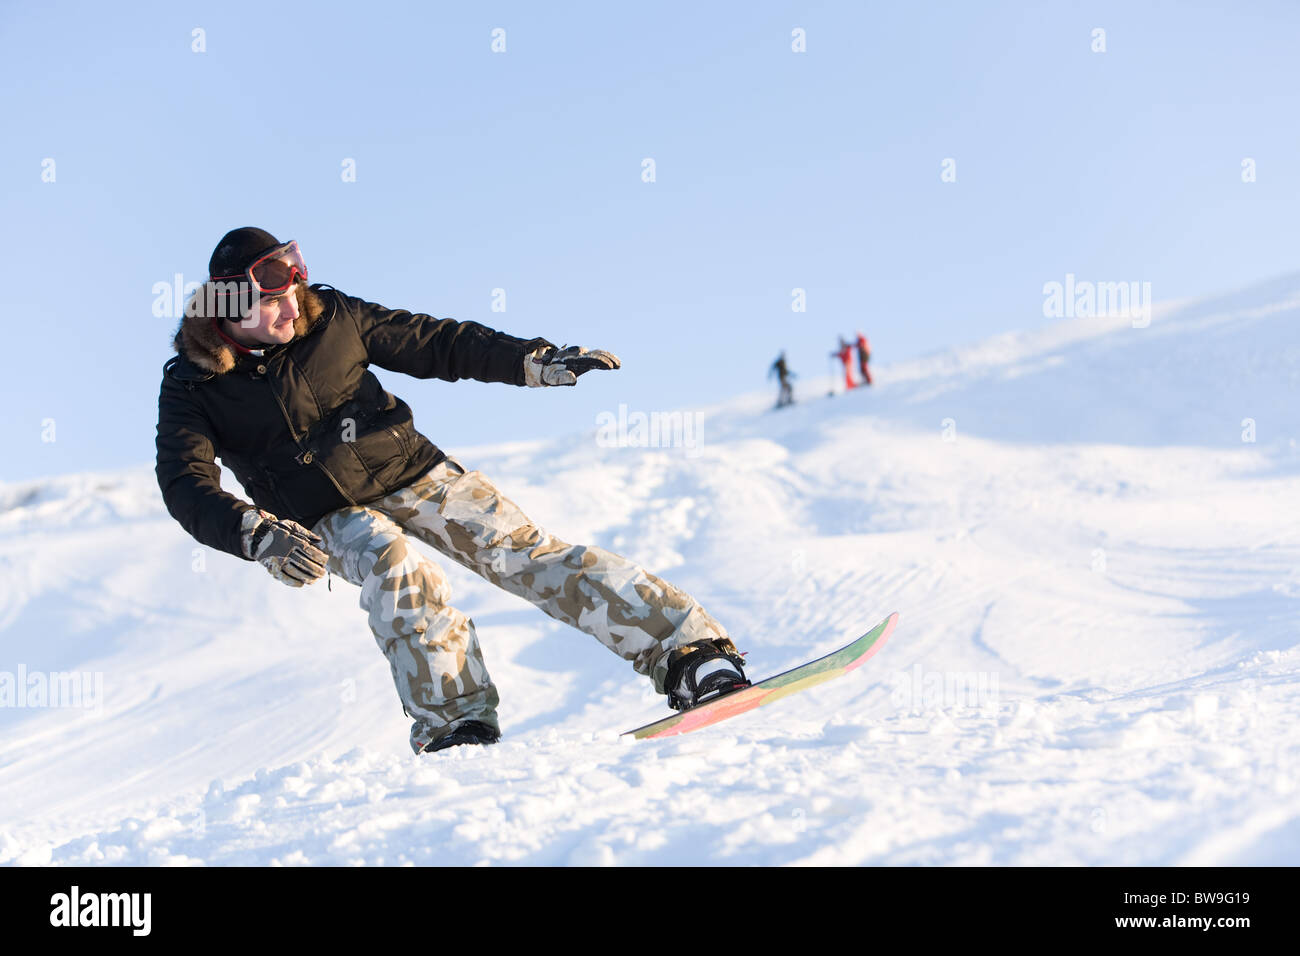 Image of sportsman go snowboarding at free time - Stock Image